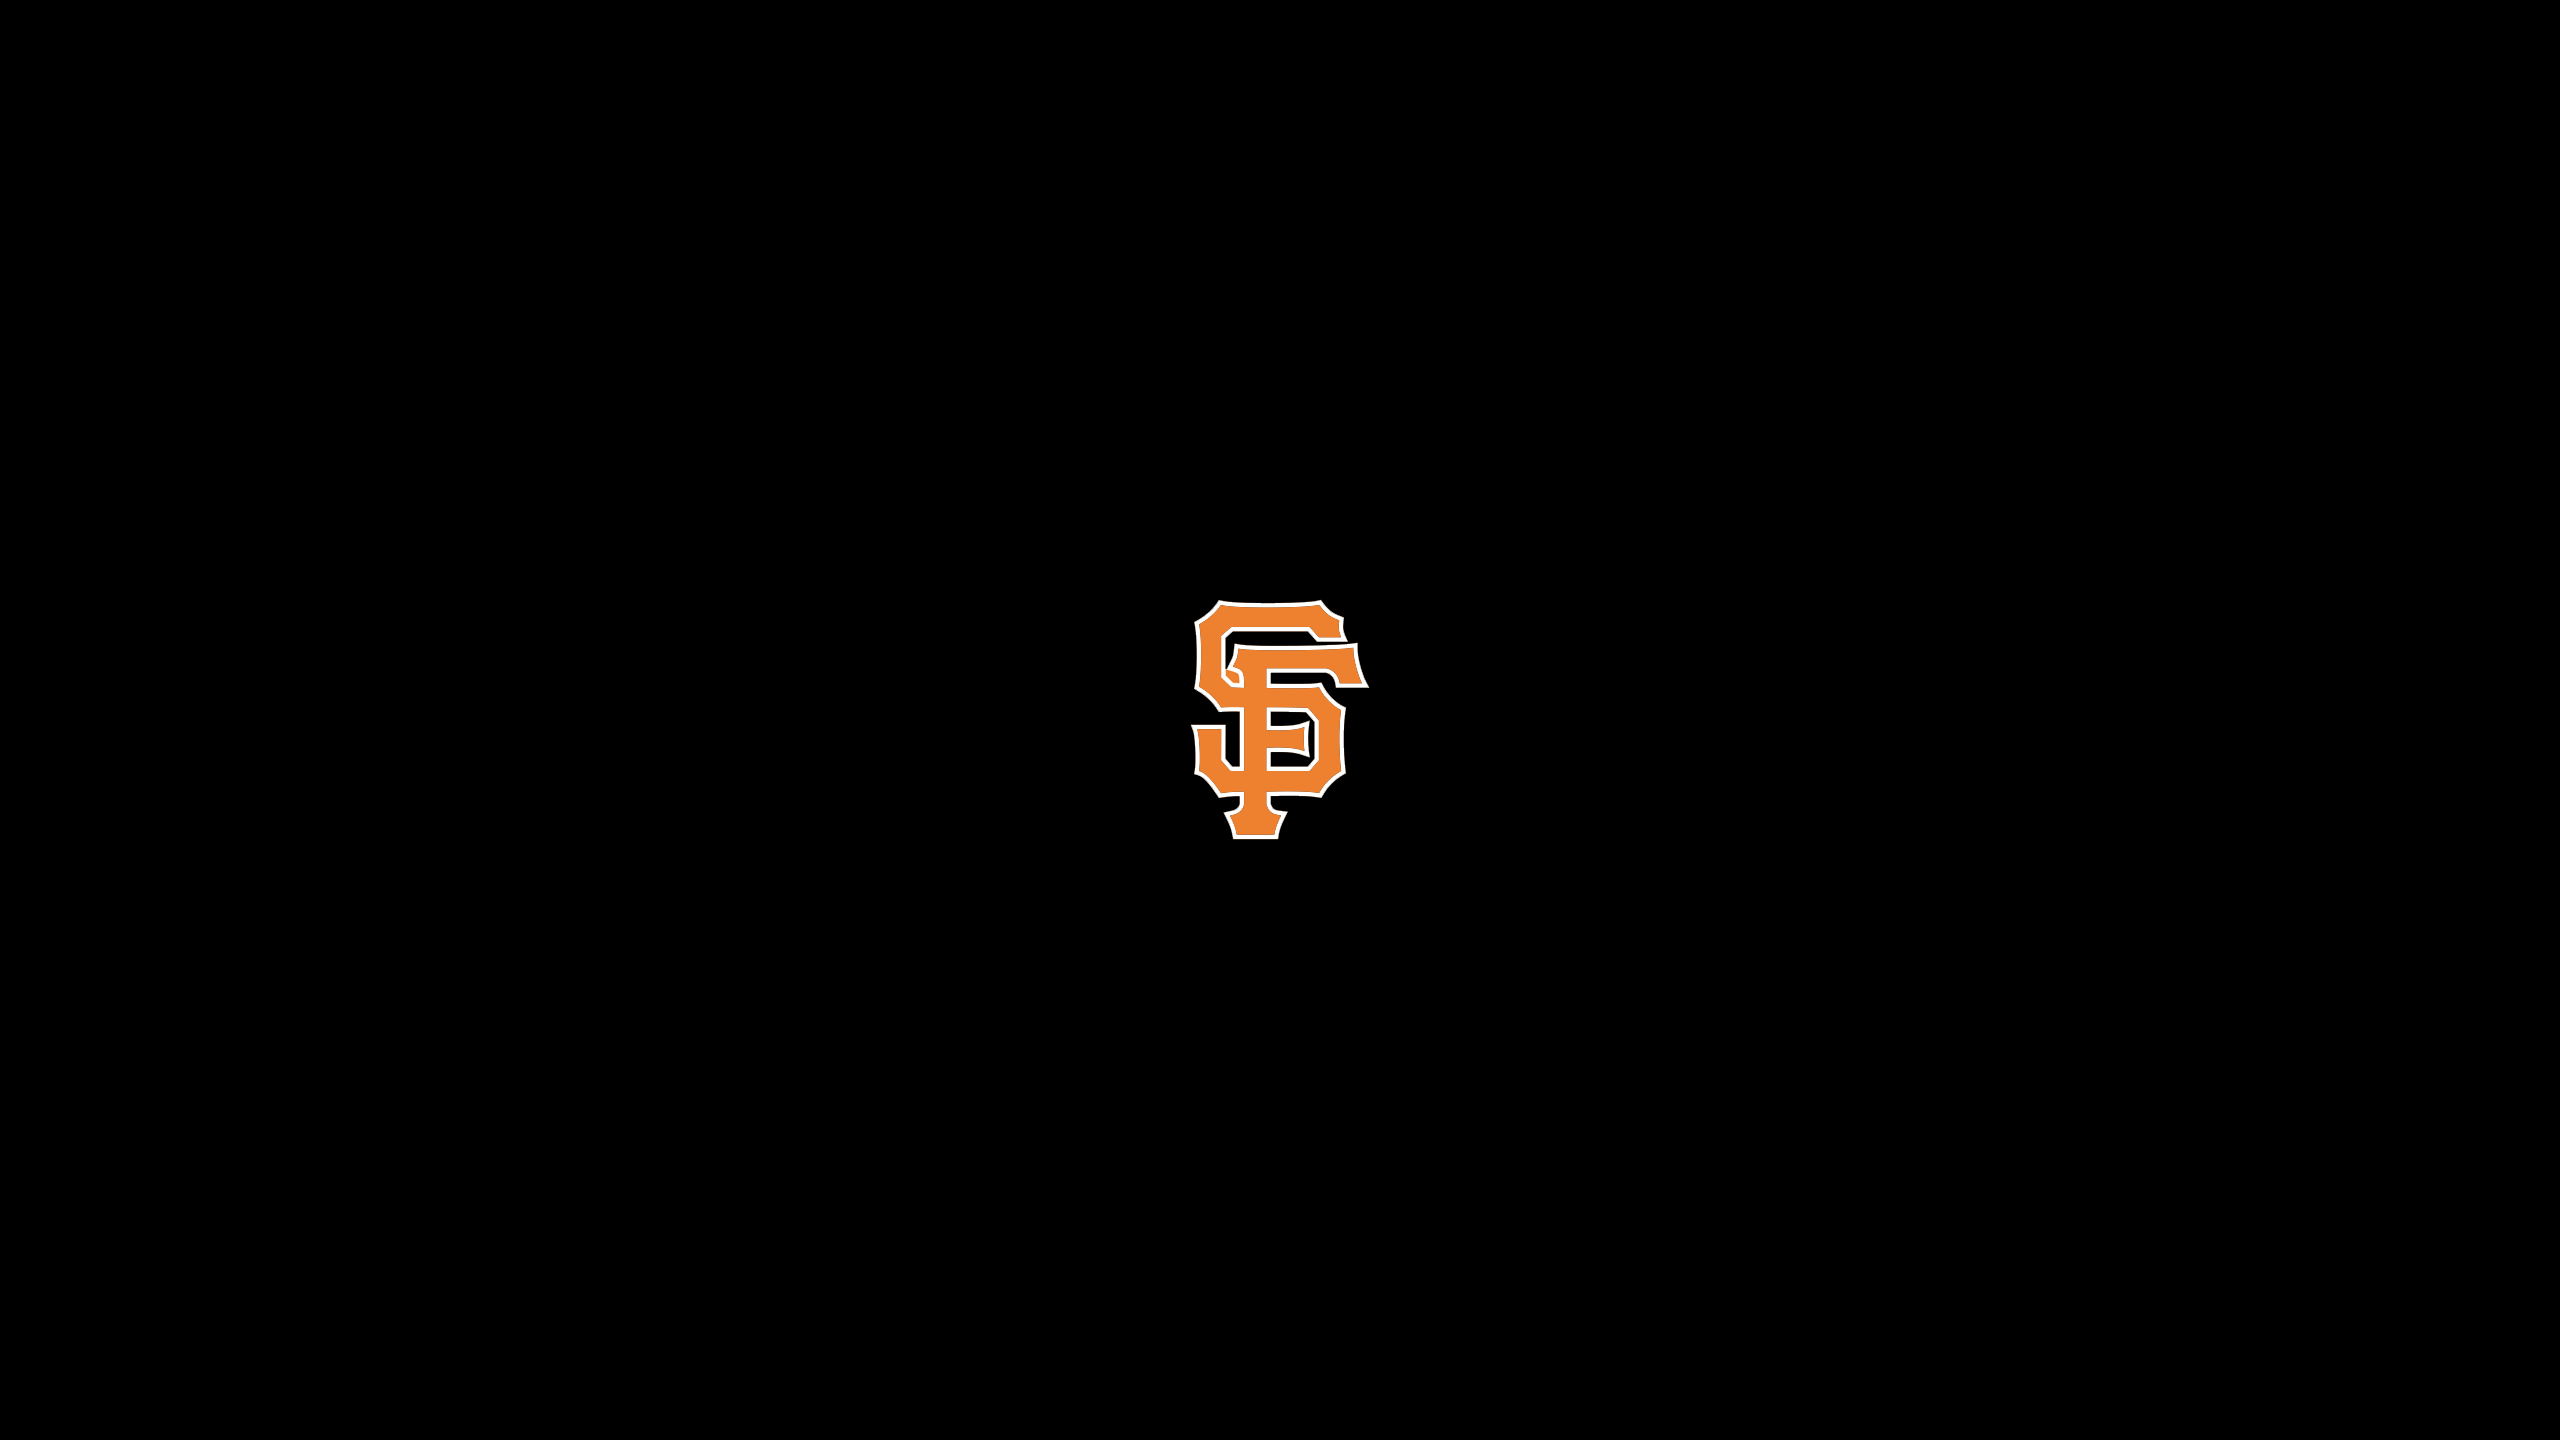 Free Download San Francisco Giants Logo Wallpapers 2560x1440 For